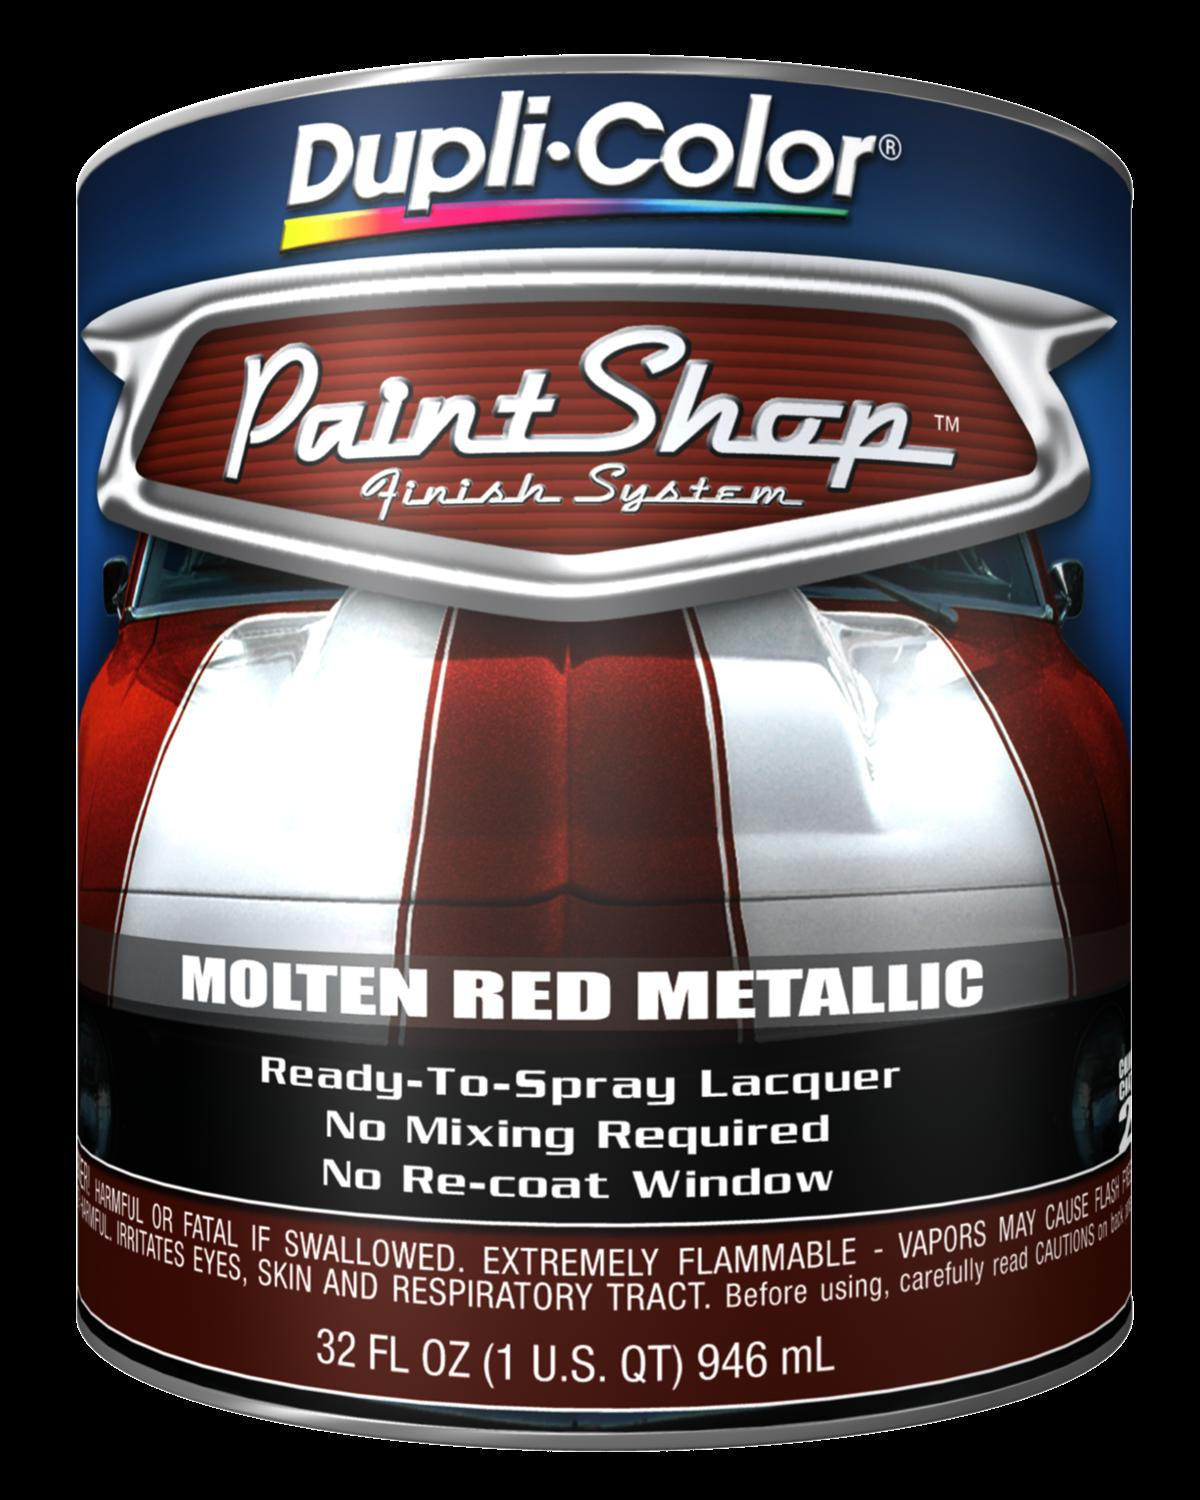 Dupli Color Paint Shop Finish Systems Bsp212 Free Shipping On